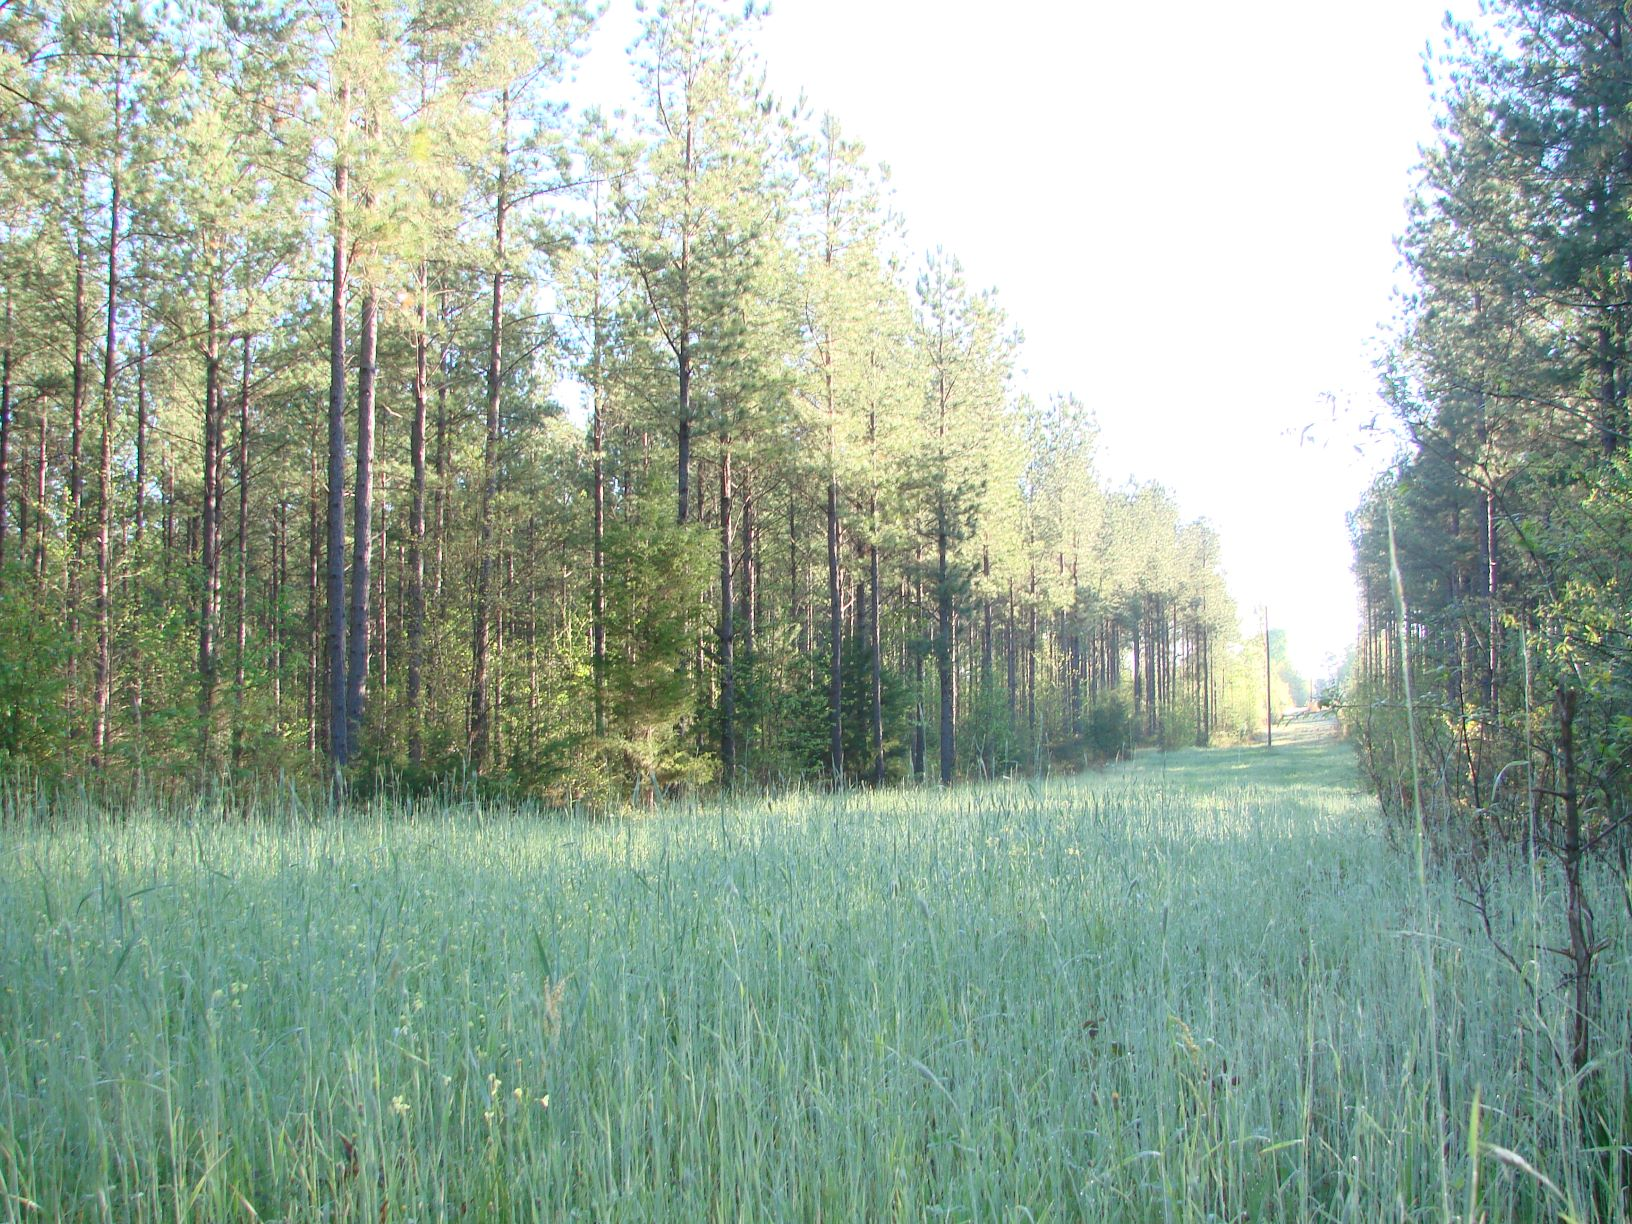 A view of the 500-foot long food plot and planted pines